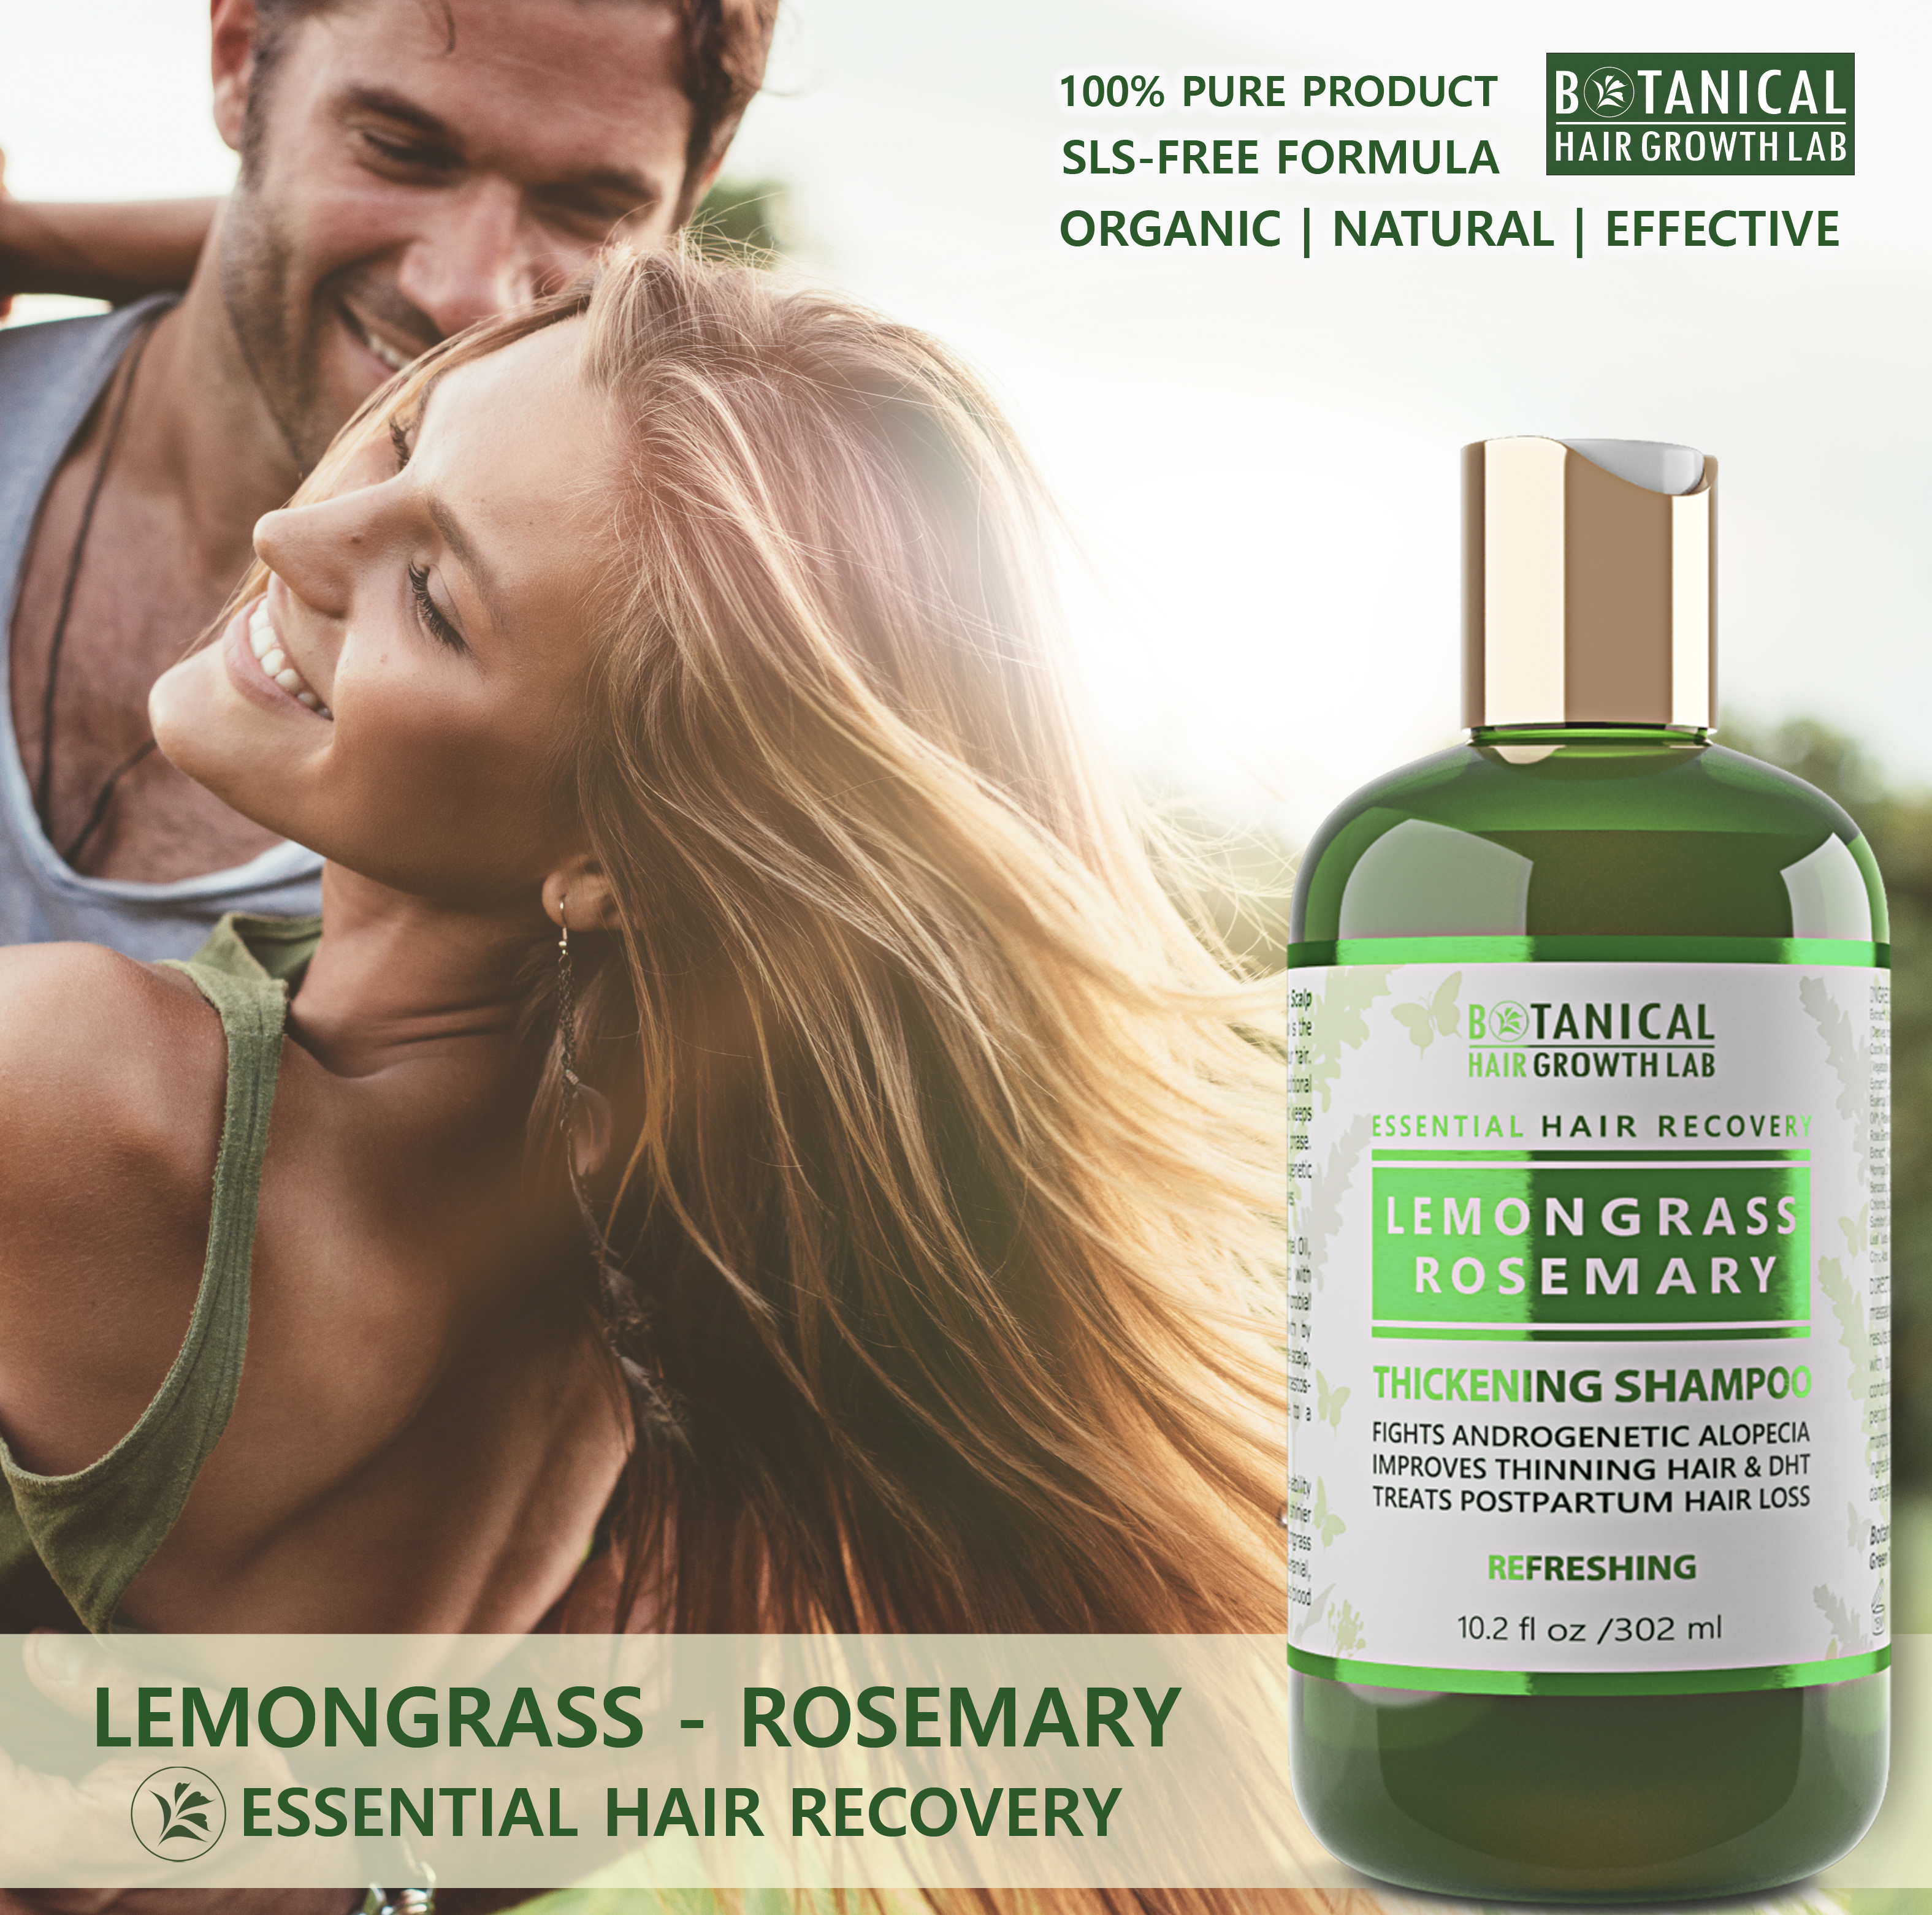 Hair Growth Thickening Shampoo Lemongrass & Rosemary /